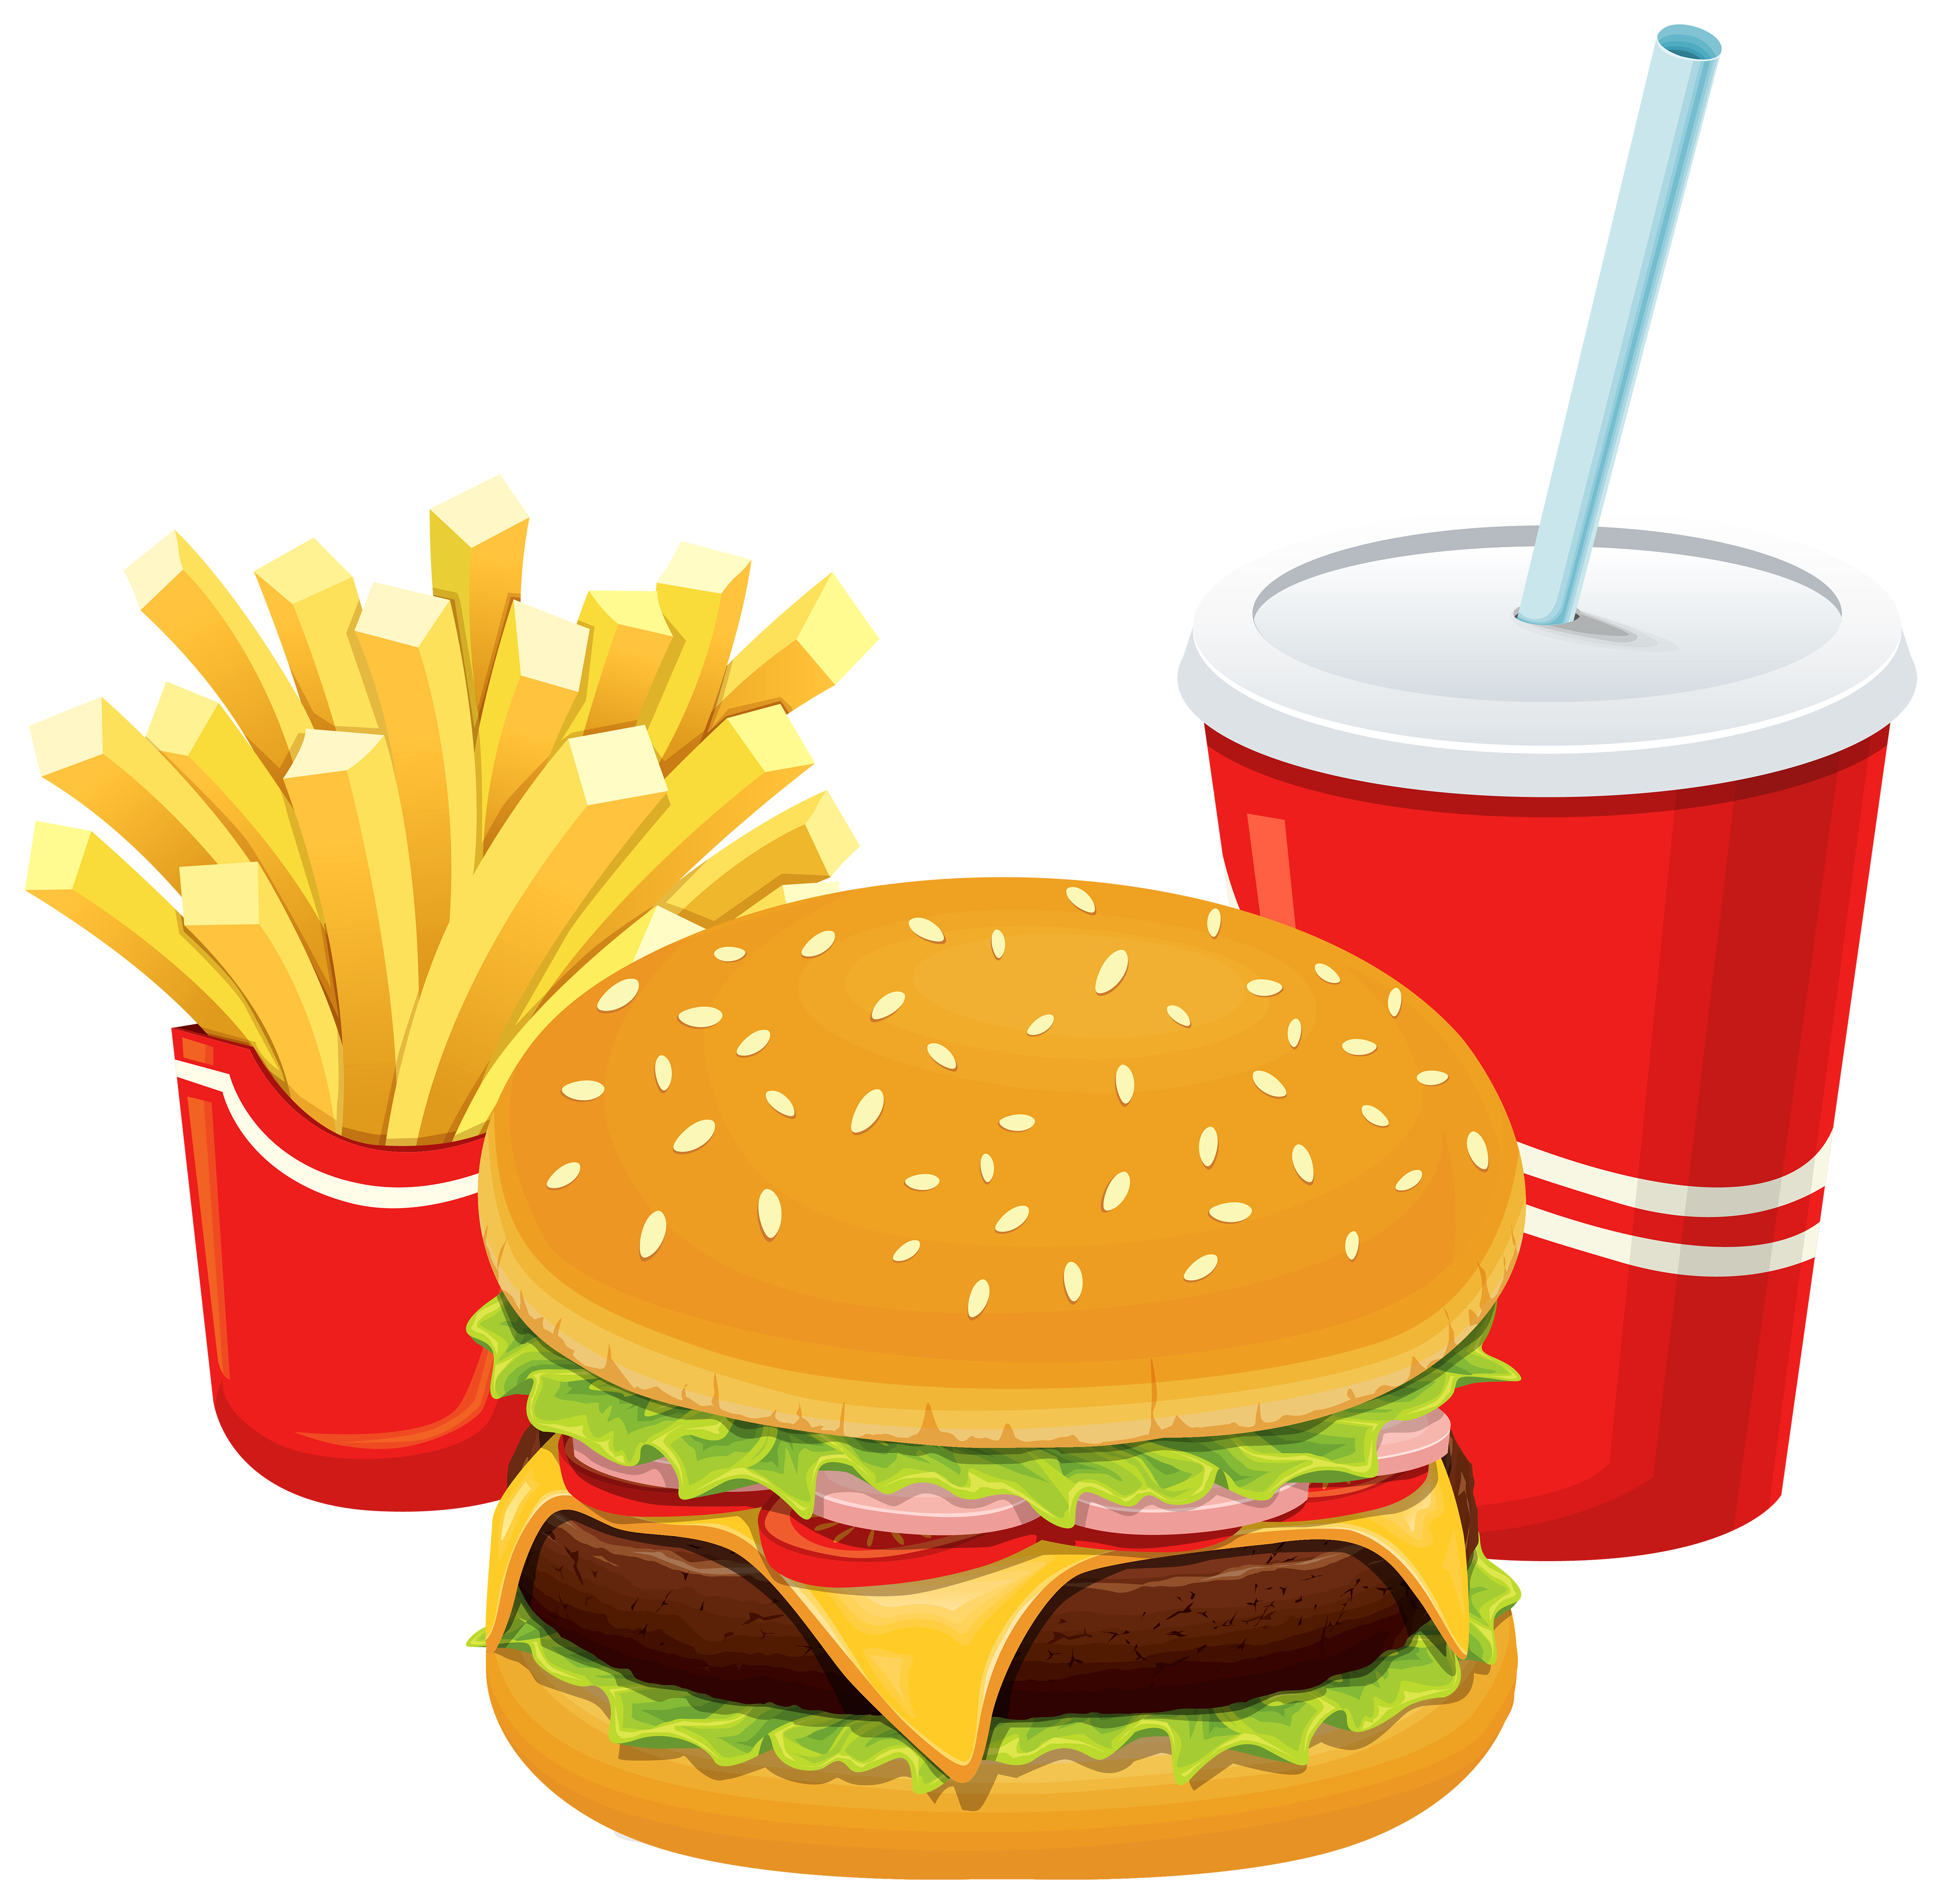 Luncheon clipart table full food. Chips hamburger pencil and